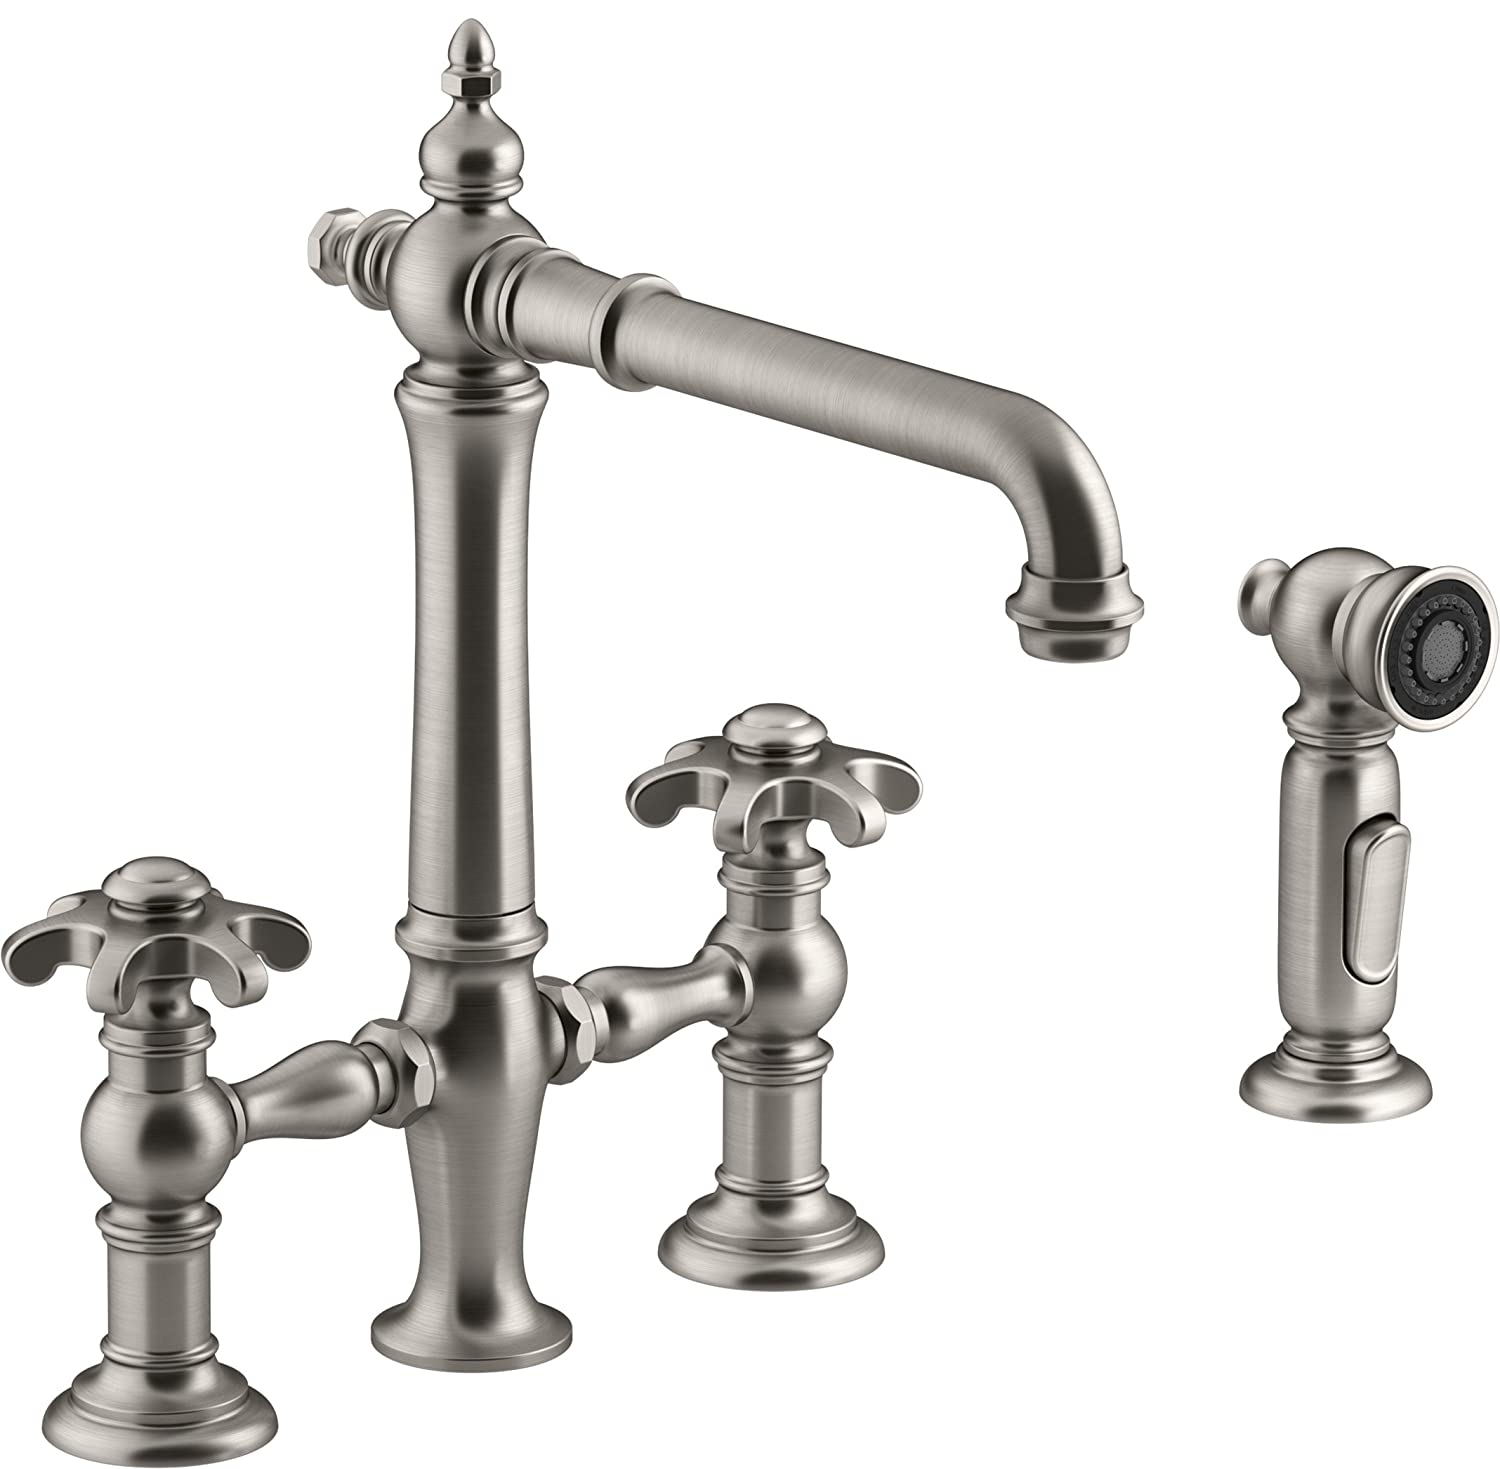 Kohler K-76519-3M-VS Artifacts Deck-Mount Bridge Kitchen Sink Faucet with Prong Handles and sidesprayVIBRANT Stainless